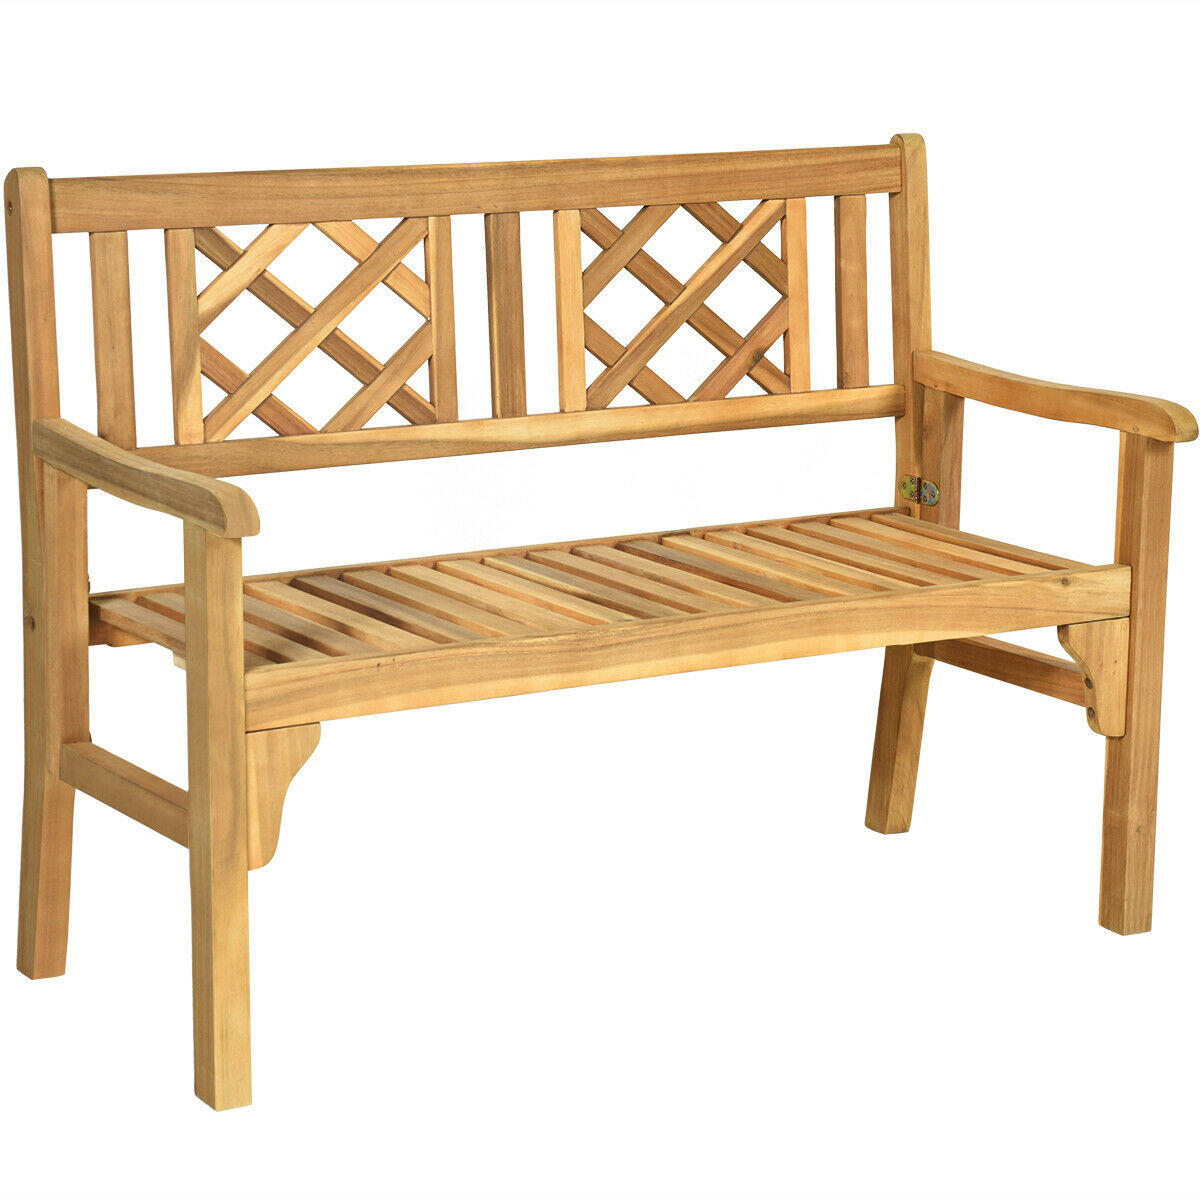 Patio Outdoor Acacia Wood Bench Folding Loveseat Chair Garden Furniture Teak Inside Hampstead Teak Garden Benches (View 7 of 25)